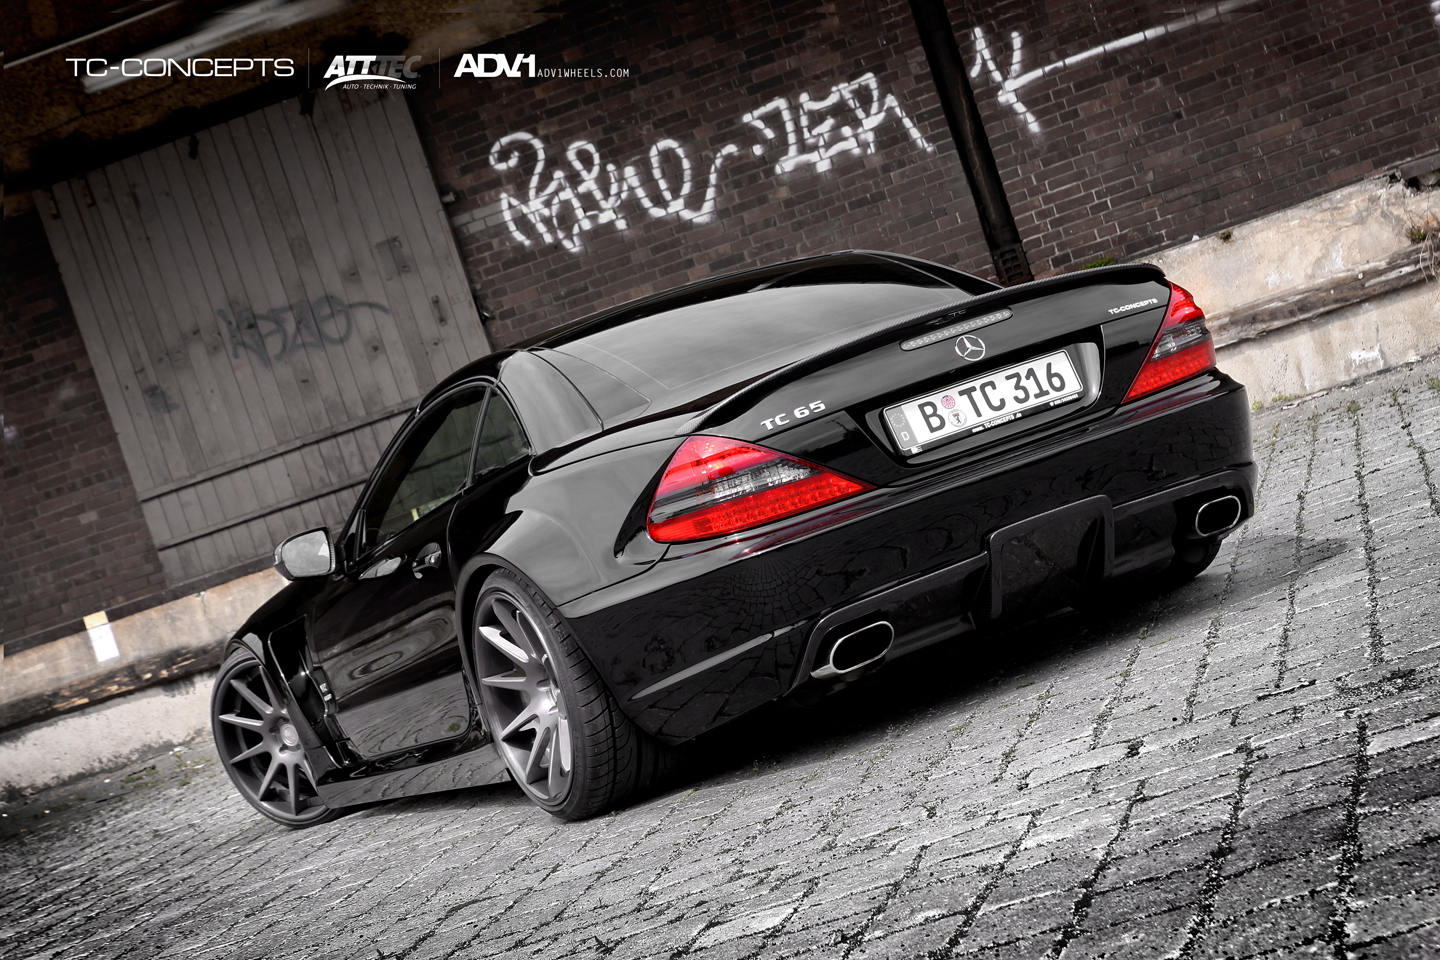 2010 tc concepts sl65 amg black s ries dark cars wallpapers. Black Bedroom Furniture Sets. Home Design Ideas